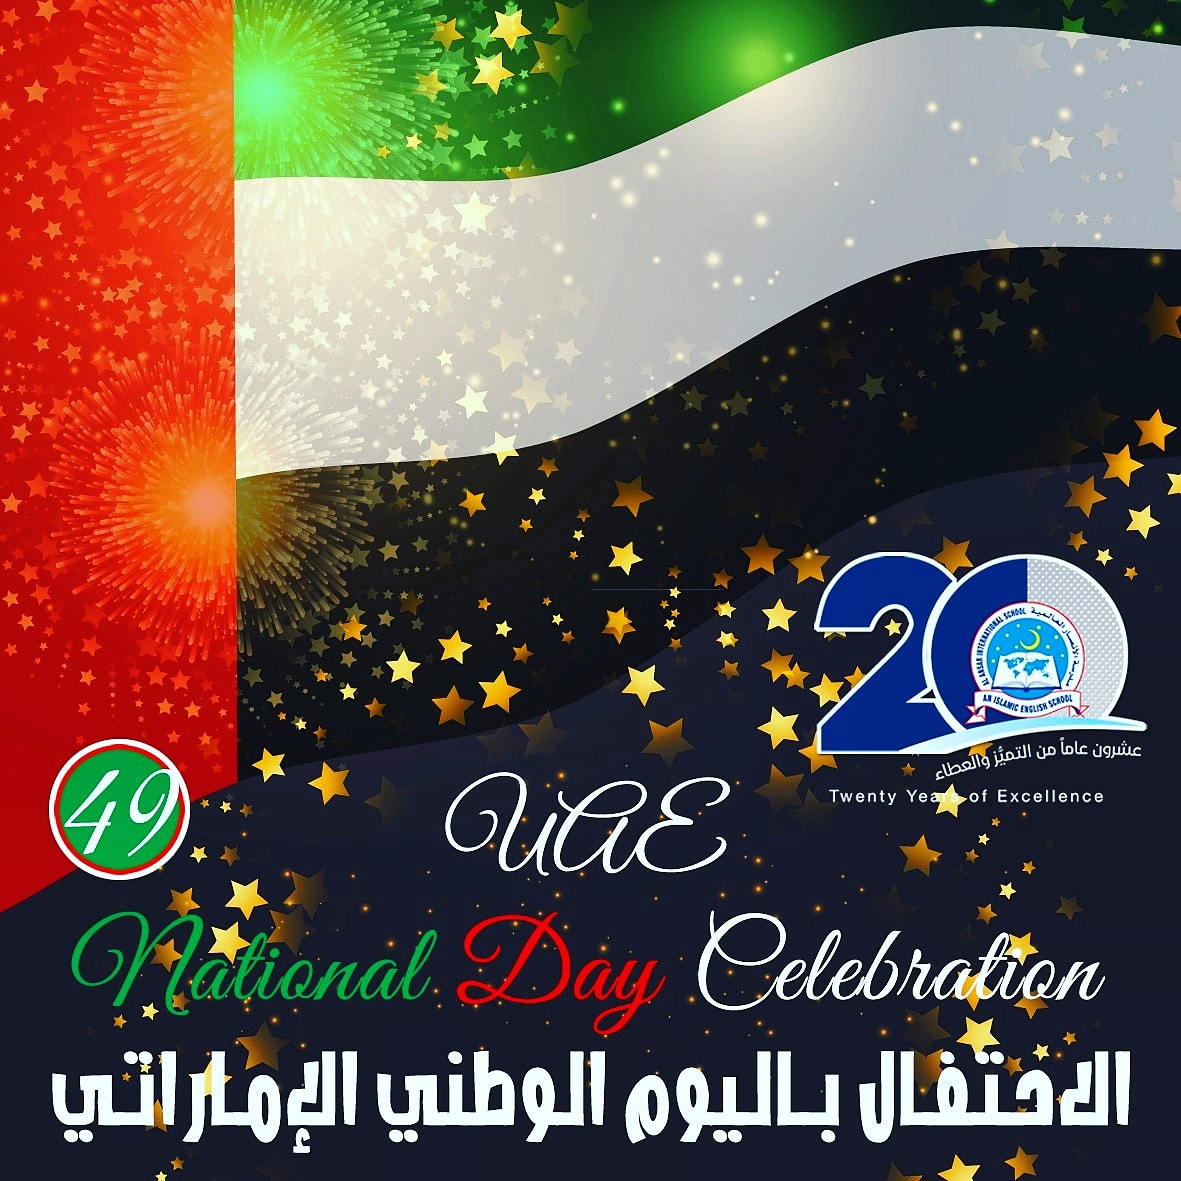 Happy 49th UAE National Day to the nation and its people from the management, staff and students of Al Ansar International School. #49 #uaenationalday🇦🇪 #freedom #independence #pride #home #withlovewecare https://t.co/8Njf9nzAGw